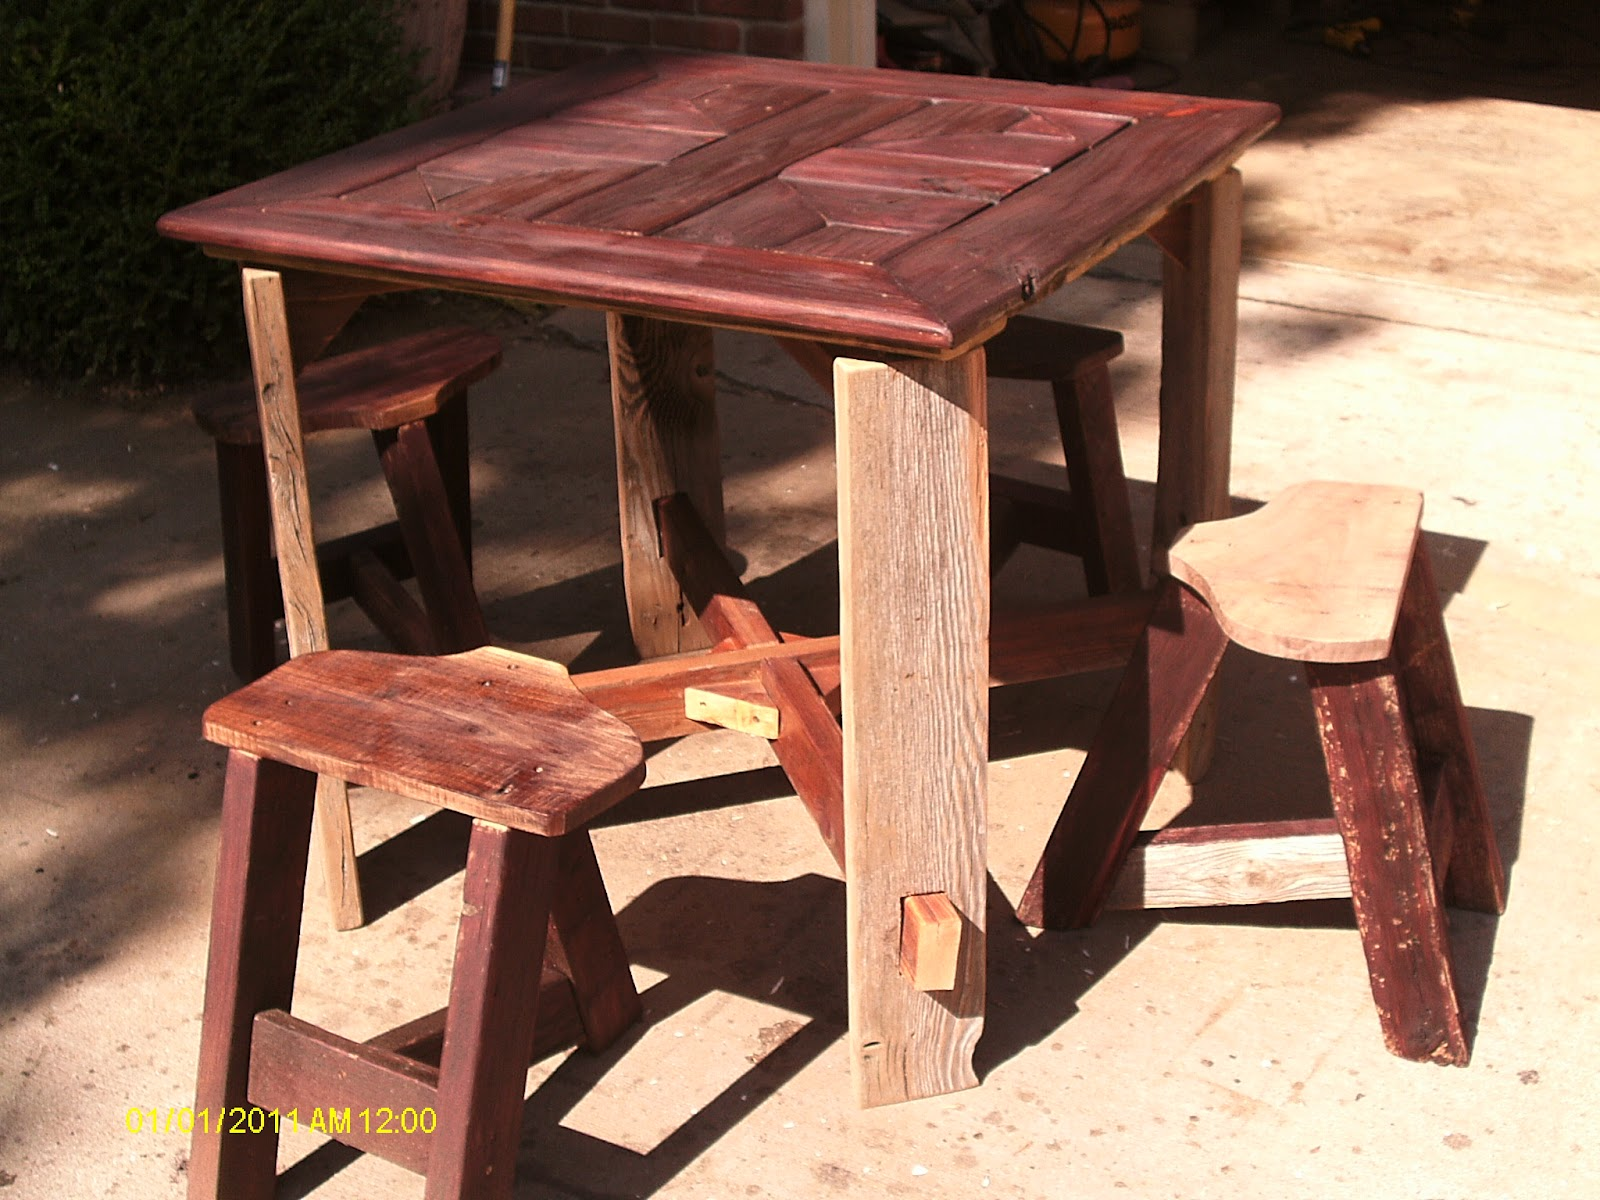 Barnwood Rustic Log Furniture Trend Home Design And Decor